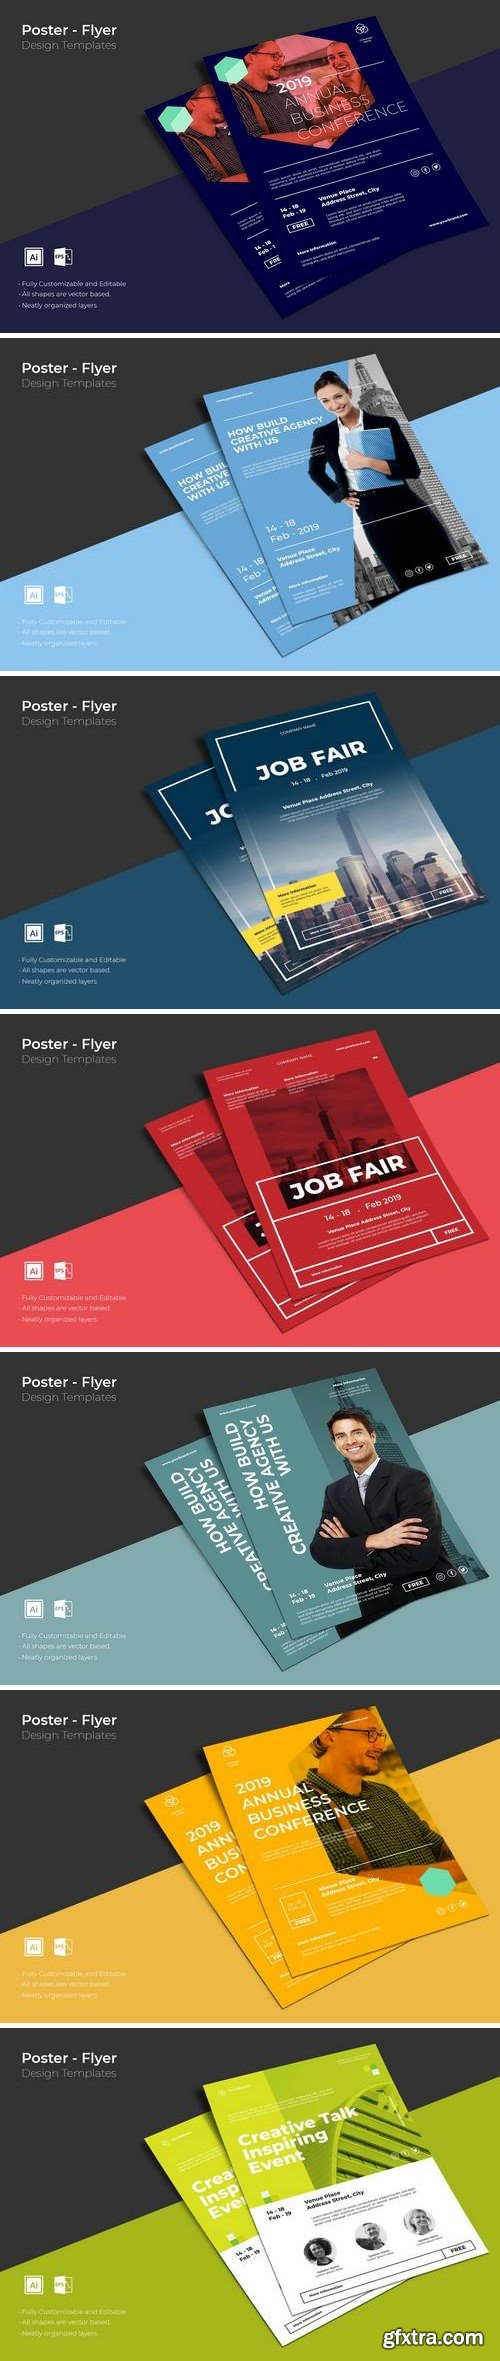 SRTP - Poster Design Bundle